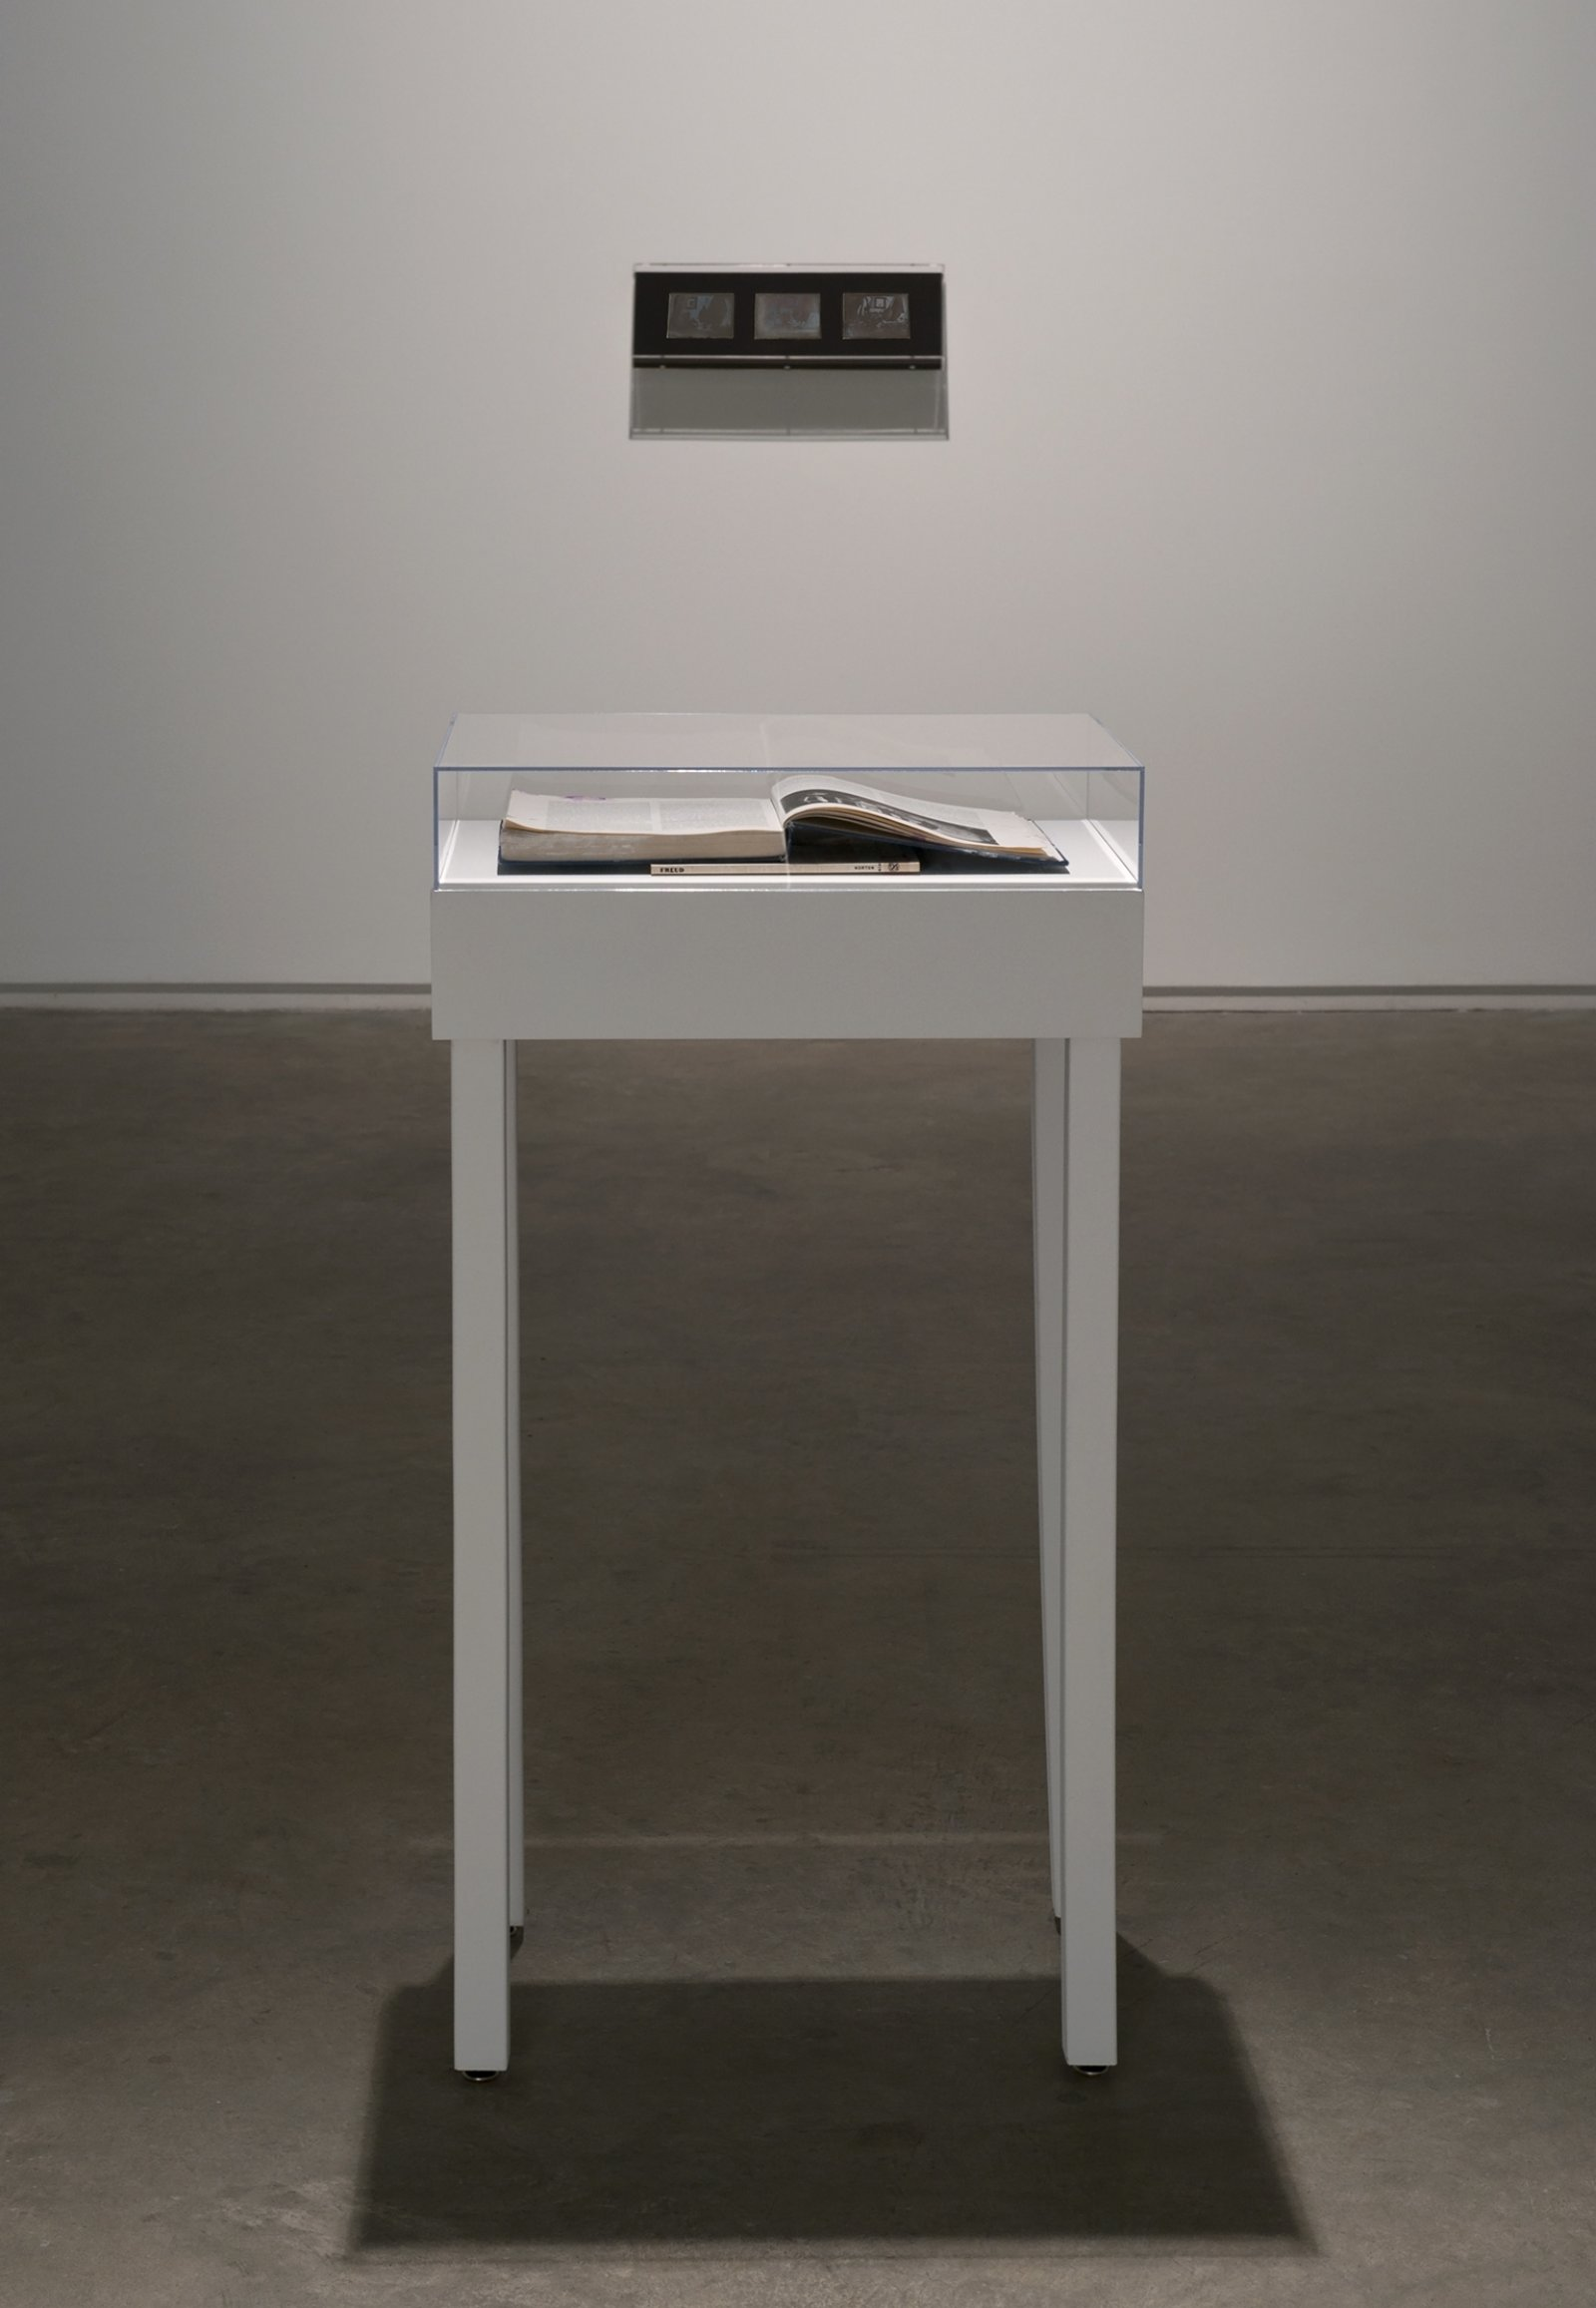 Julia Feyrer, History of Photography ​from ​The artist's studio, 2012, mixed media, dimensions variable by Julia Feyrer